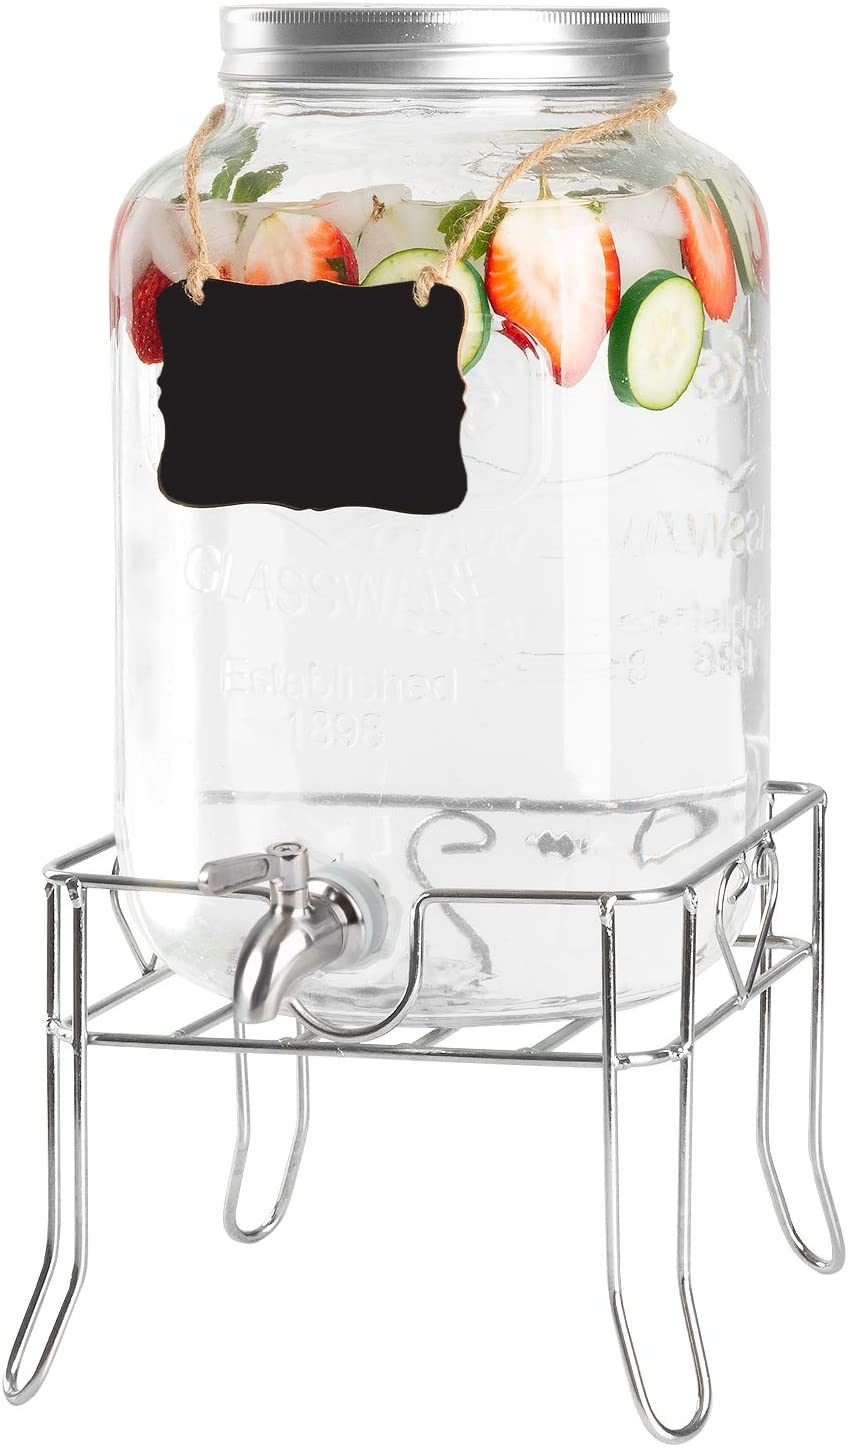 Ilyapa Max 82% OFF Outdoor Glass Beverage Dispenser Metal Sturdy Base with Challenge the lowest price of Japan ☆